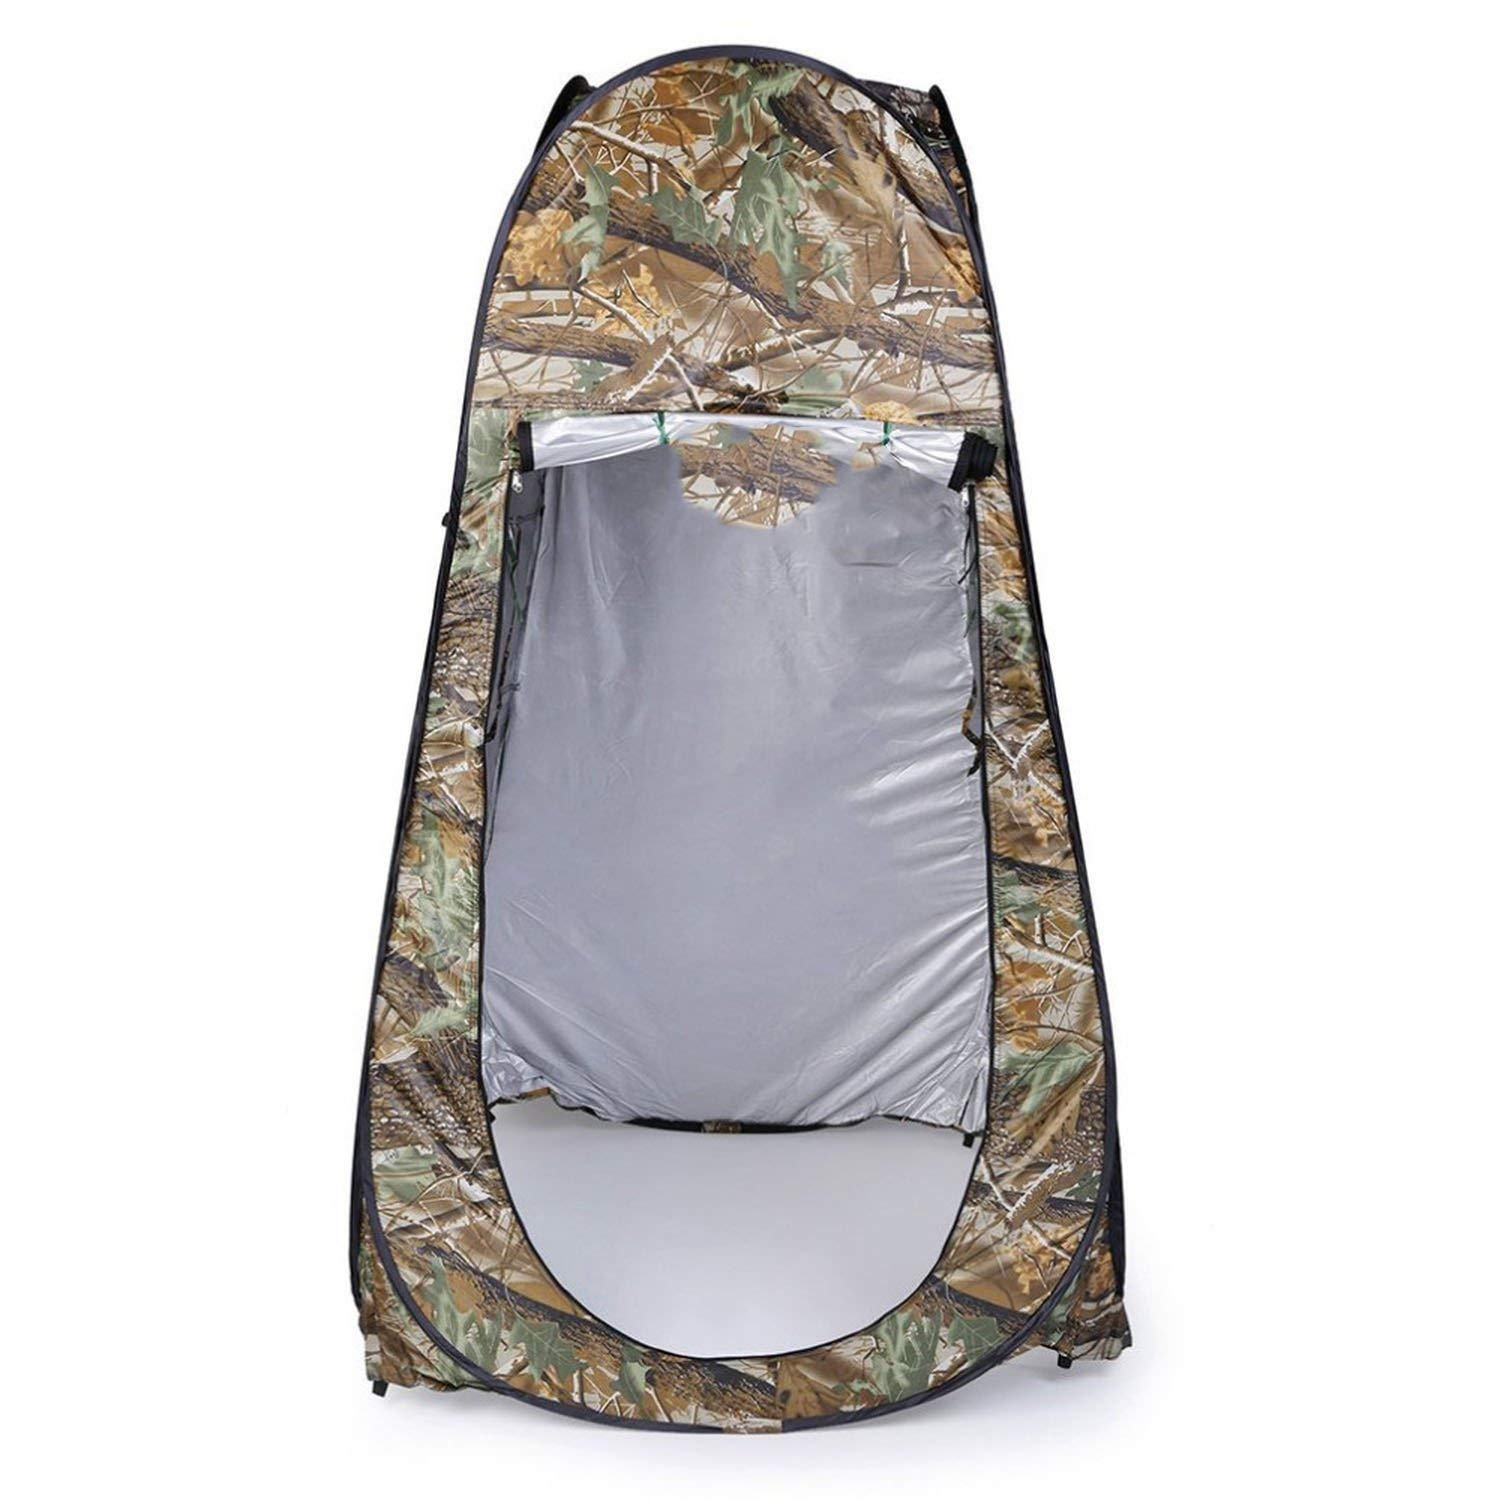 DESIRE DESTINATION Outdoor Pop Up Camouflage Tent 180T Camping Shower Bathroom Privacy Toilet Changing Room Shelter Single Moving Folding Tents by DESIRE DESTINATION